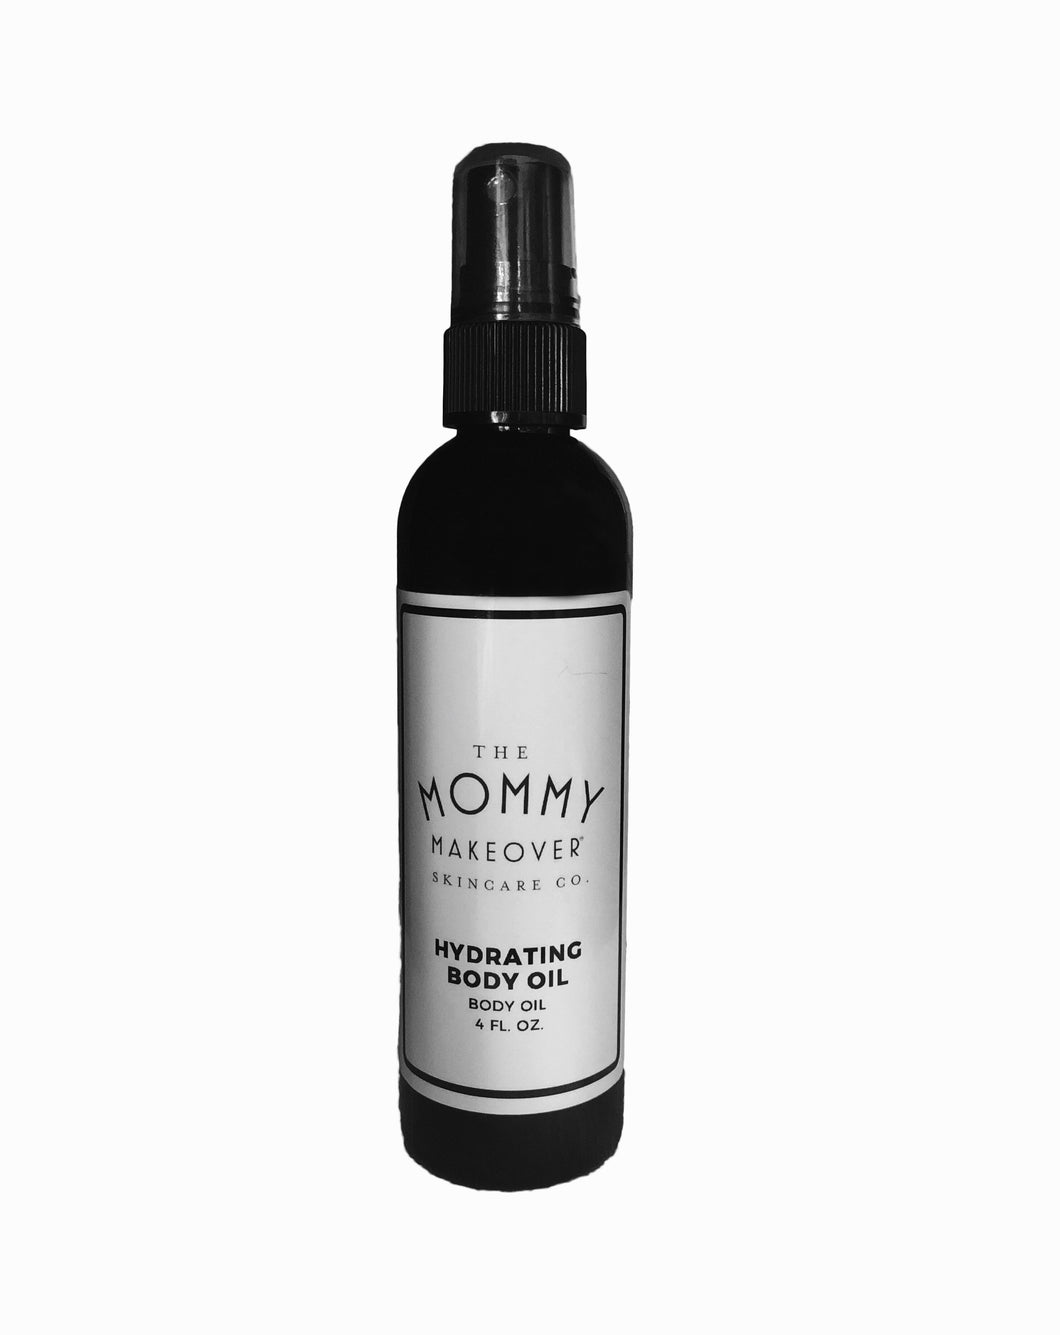 Body Oil | The Mommy Makeover Skincare Co.